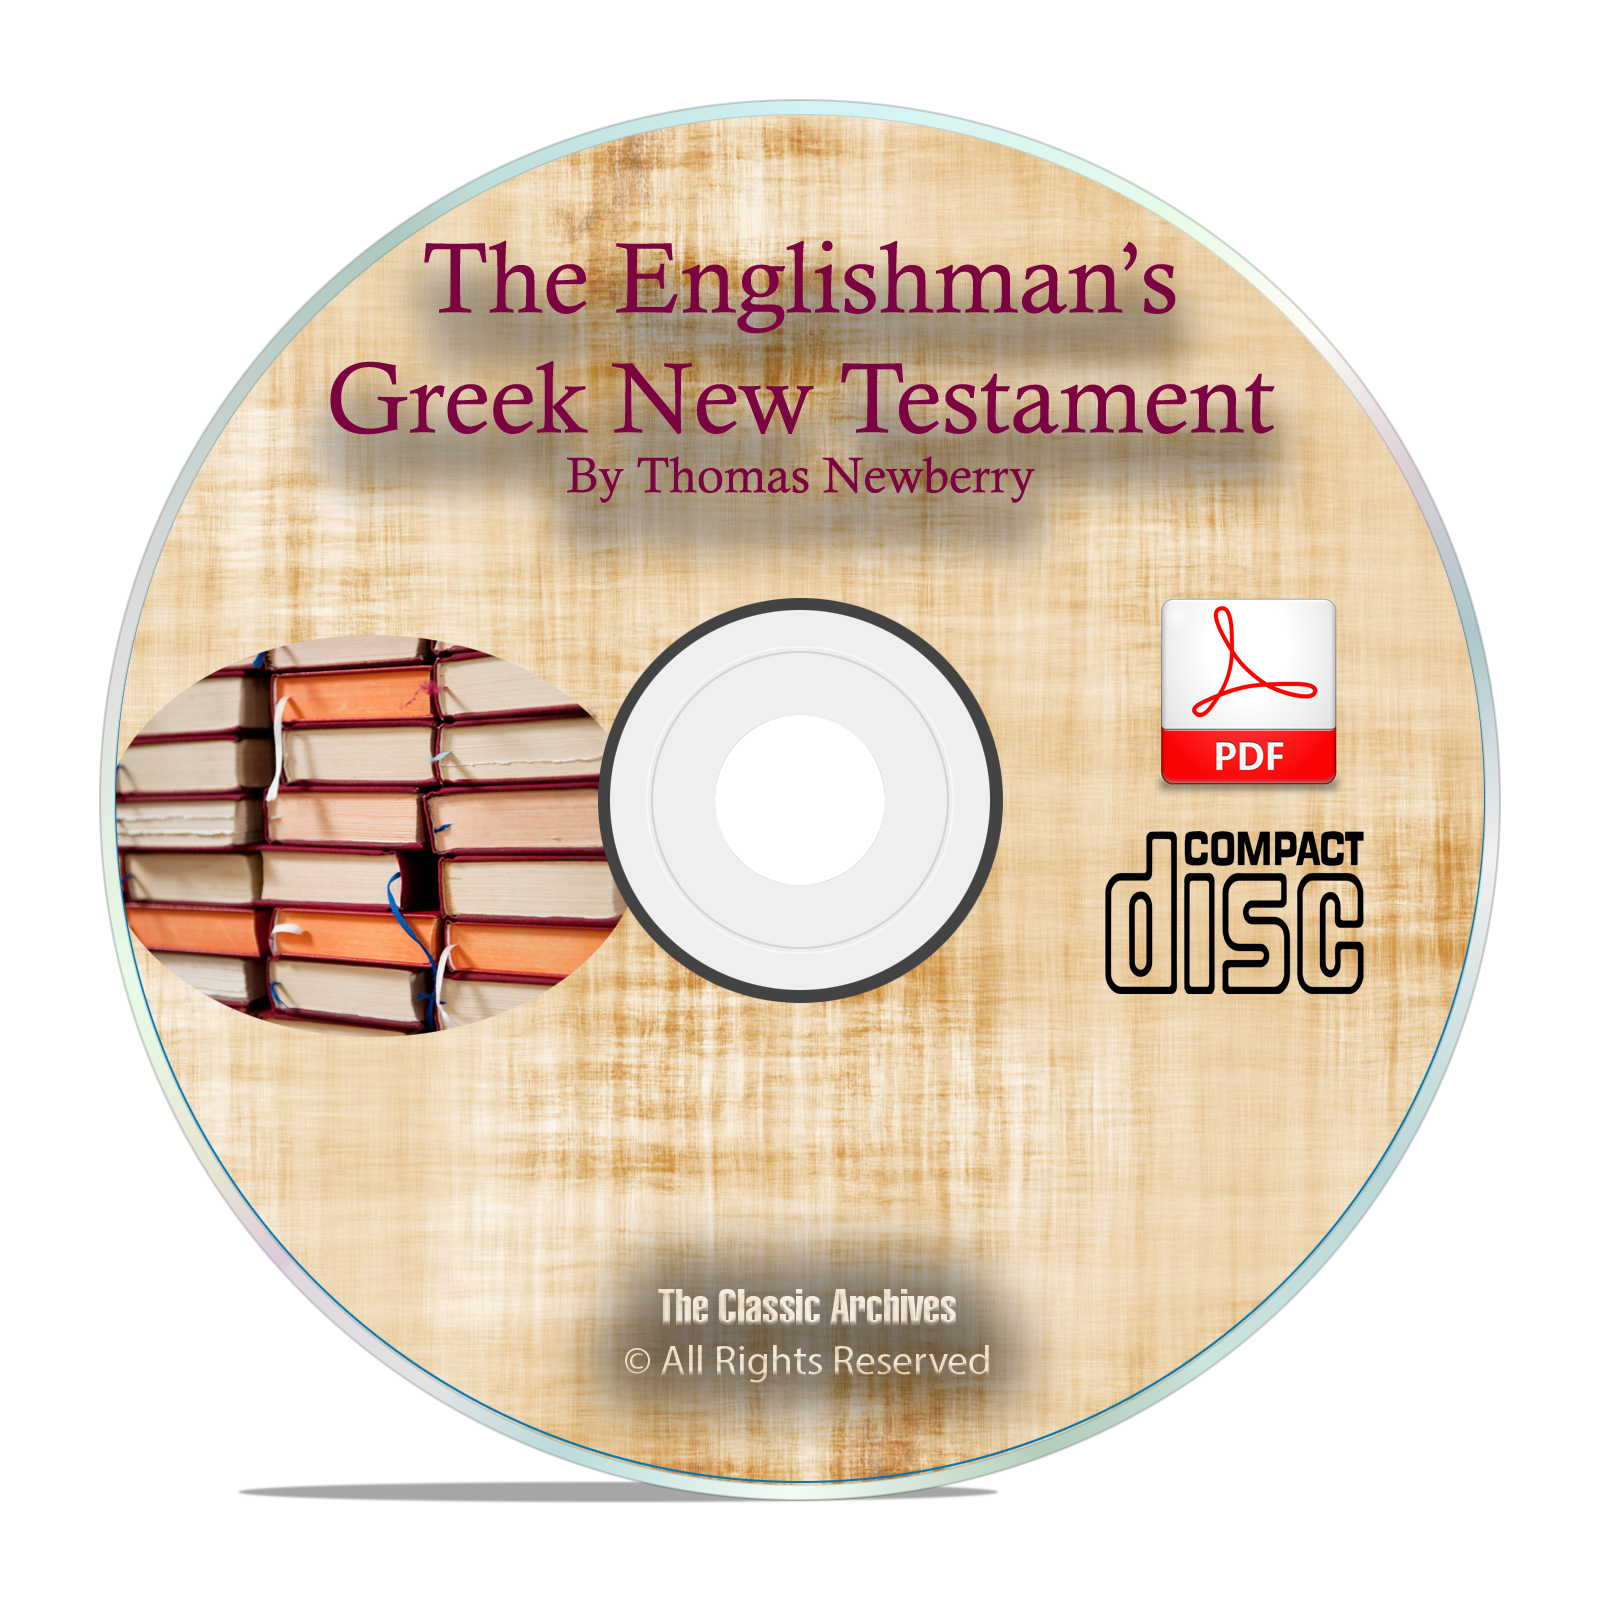 ENGLISHMAN'S GREEK NEW TESTAMENT INTERLINEAR BIBLE, KJV Bible Study PDF CD